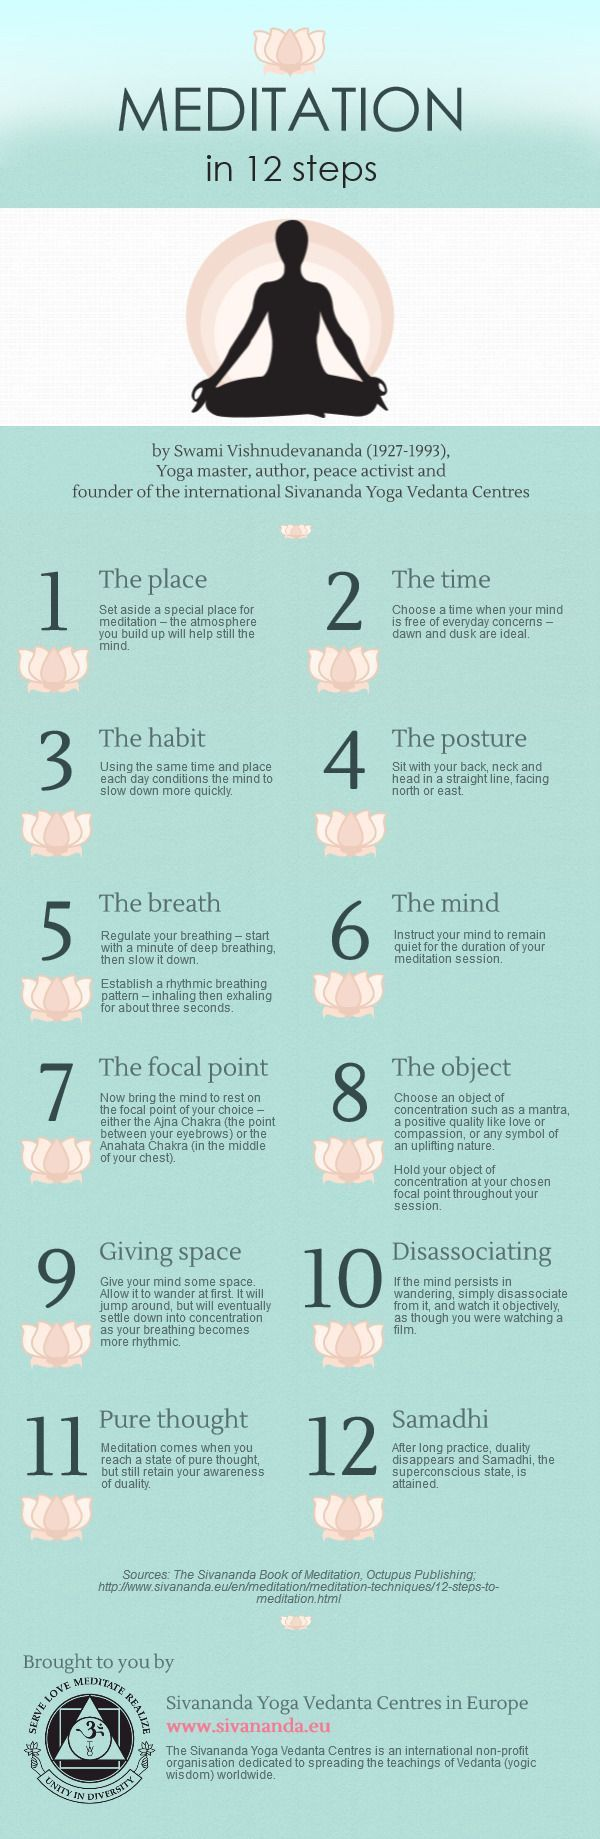 Meditation in 12 Steps infographic